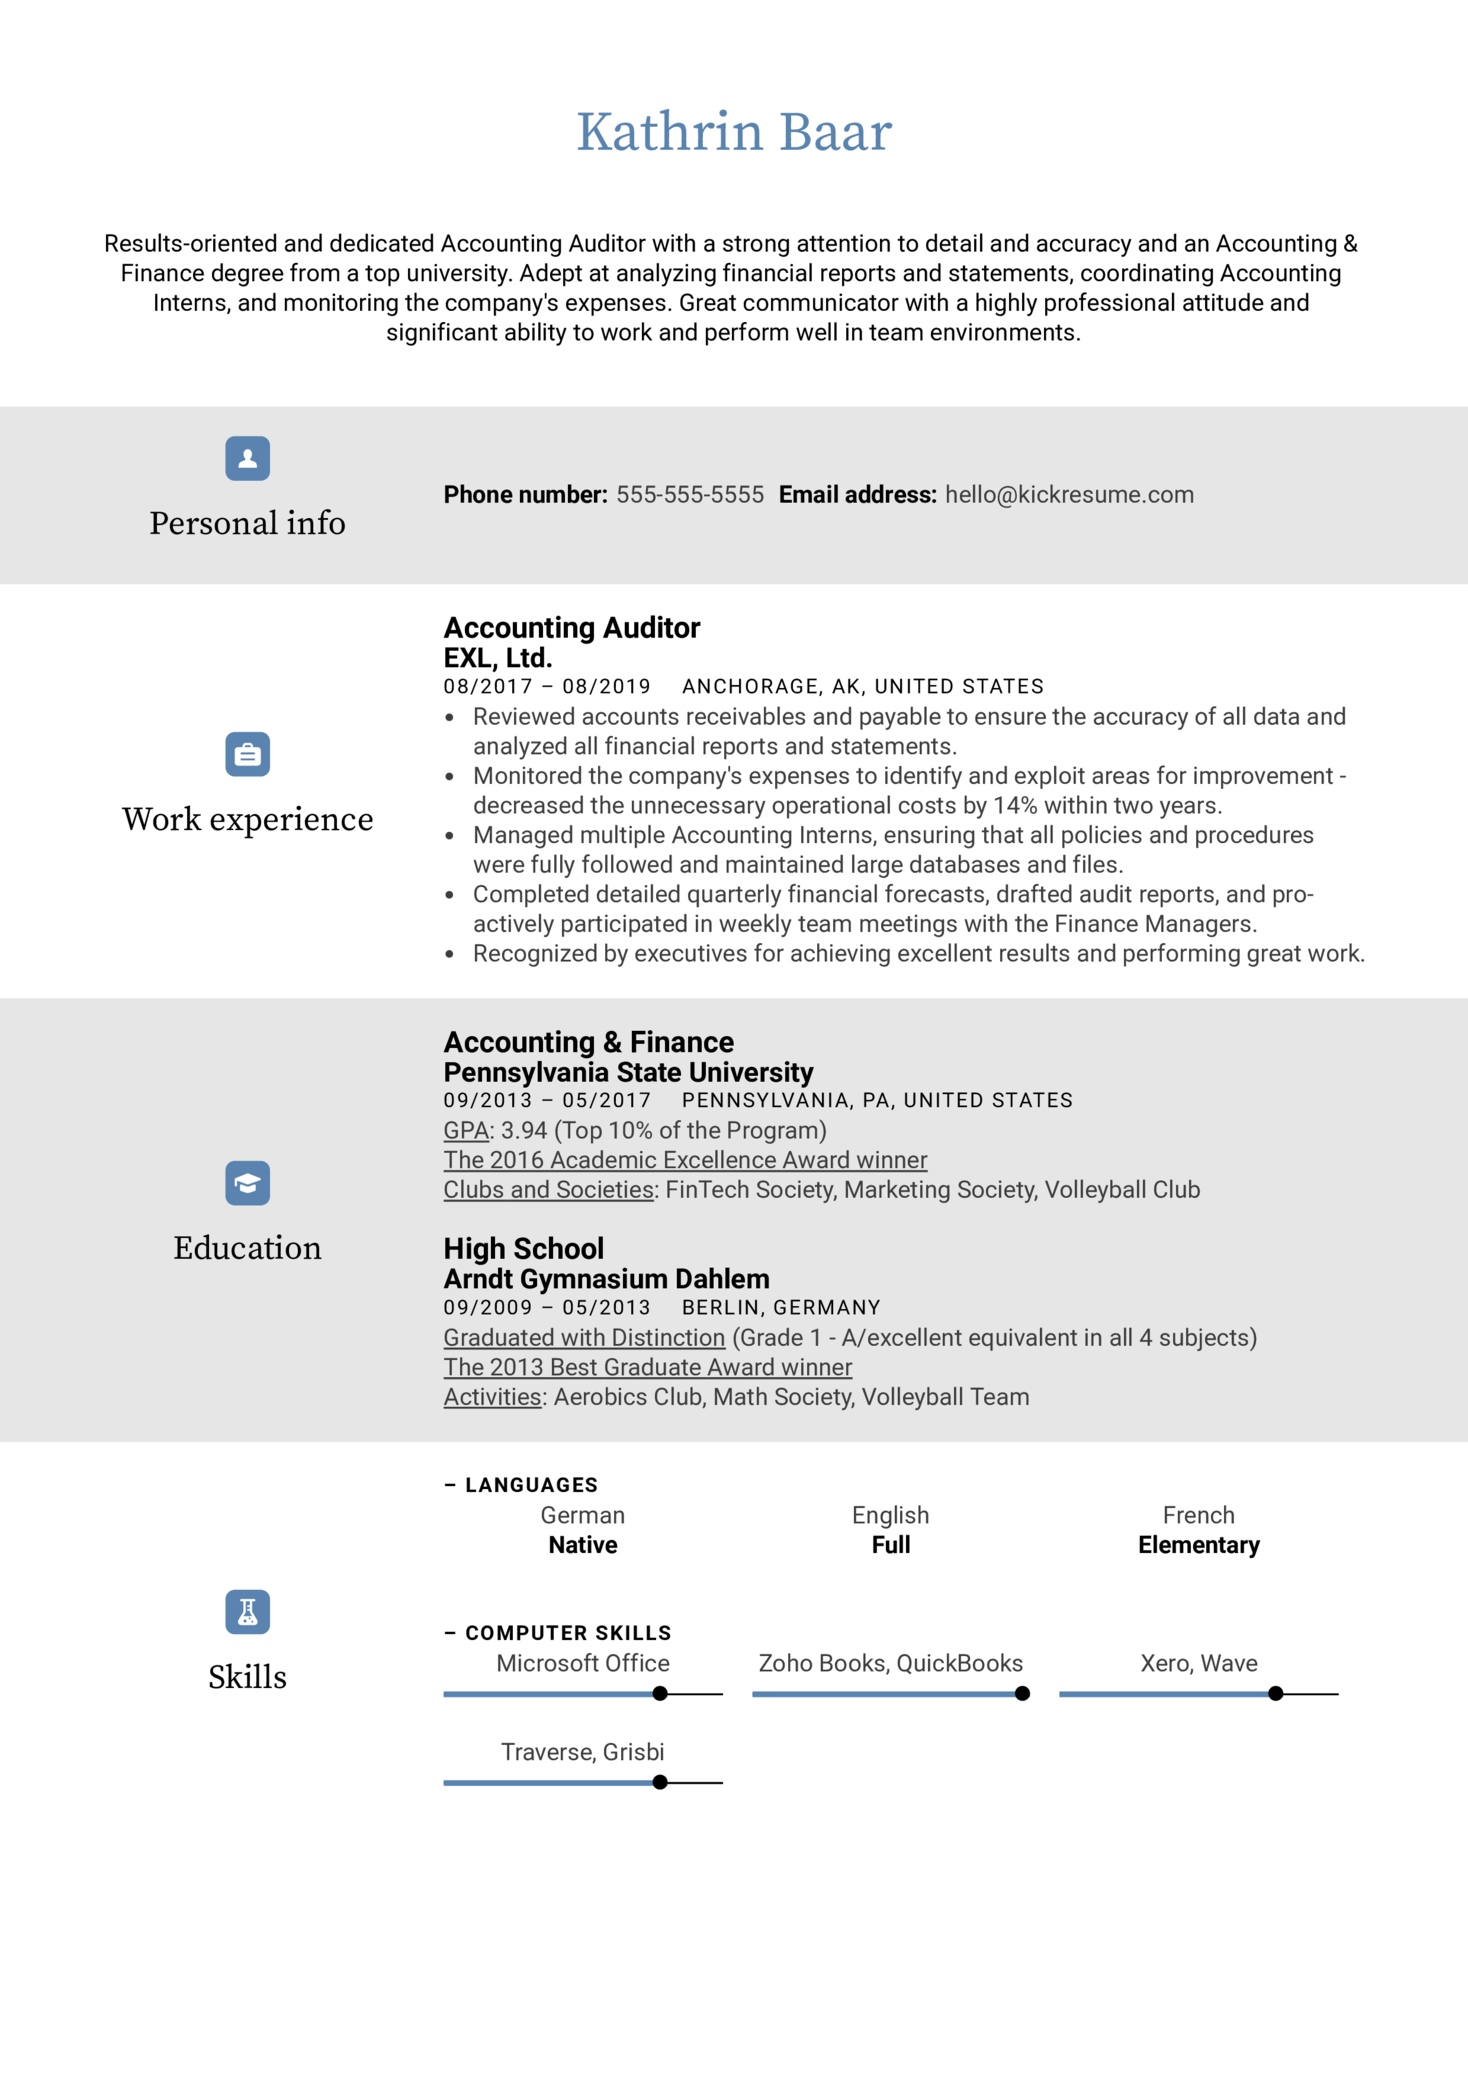 Accounting Auditor Resume Sample (Part 1)